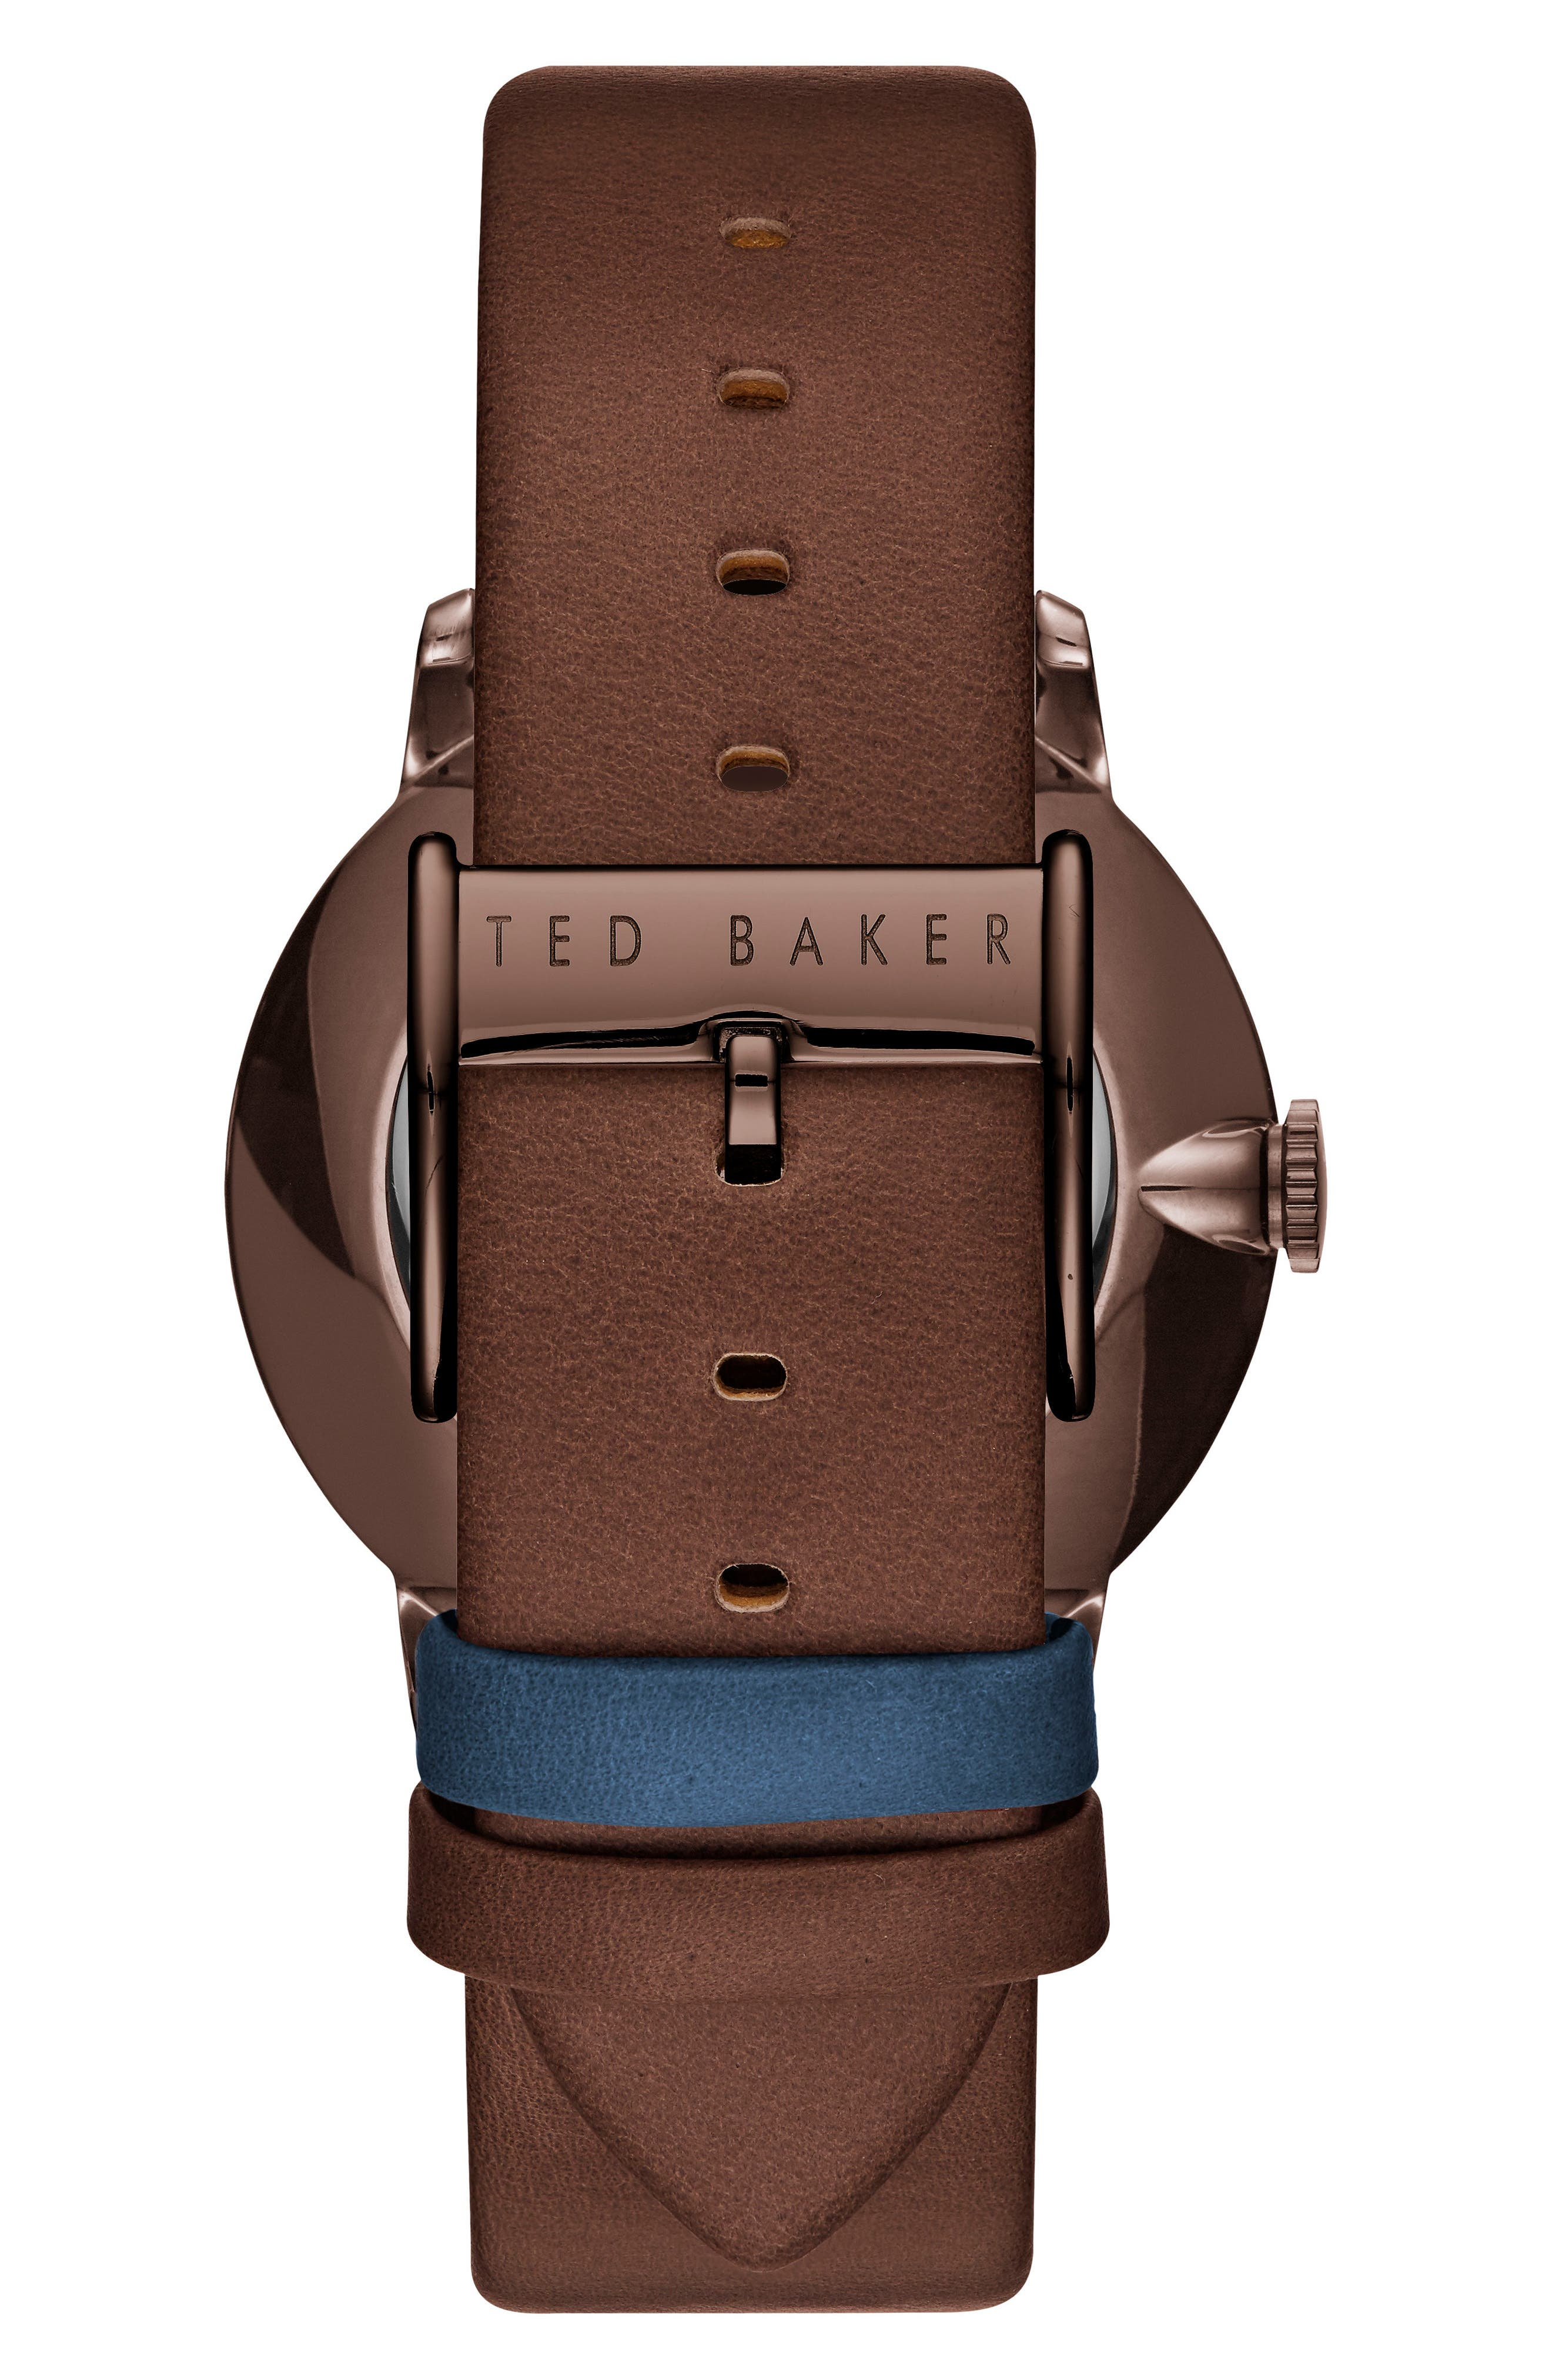 TED BAKER LONDON, James Multifunction Leather Strap Watch, 42mm, Alternate thumbnail 2, color, NAVY/ TAN